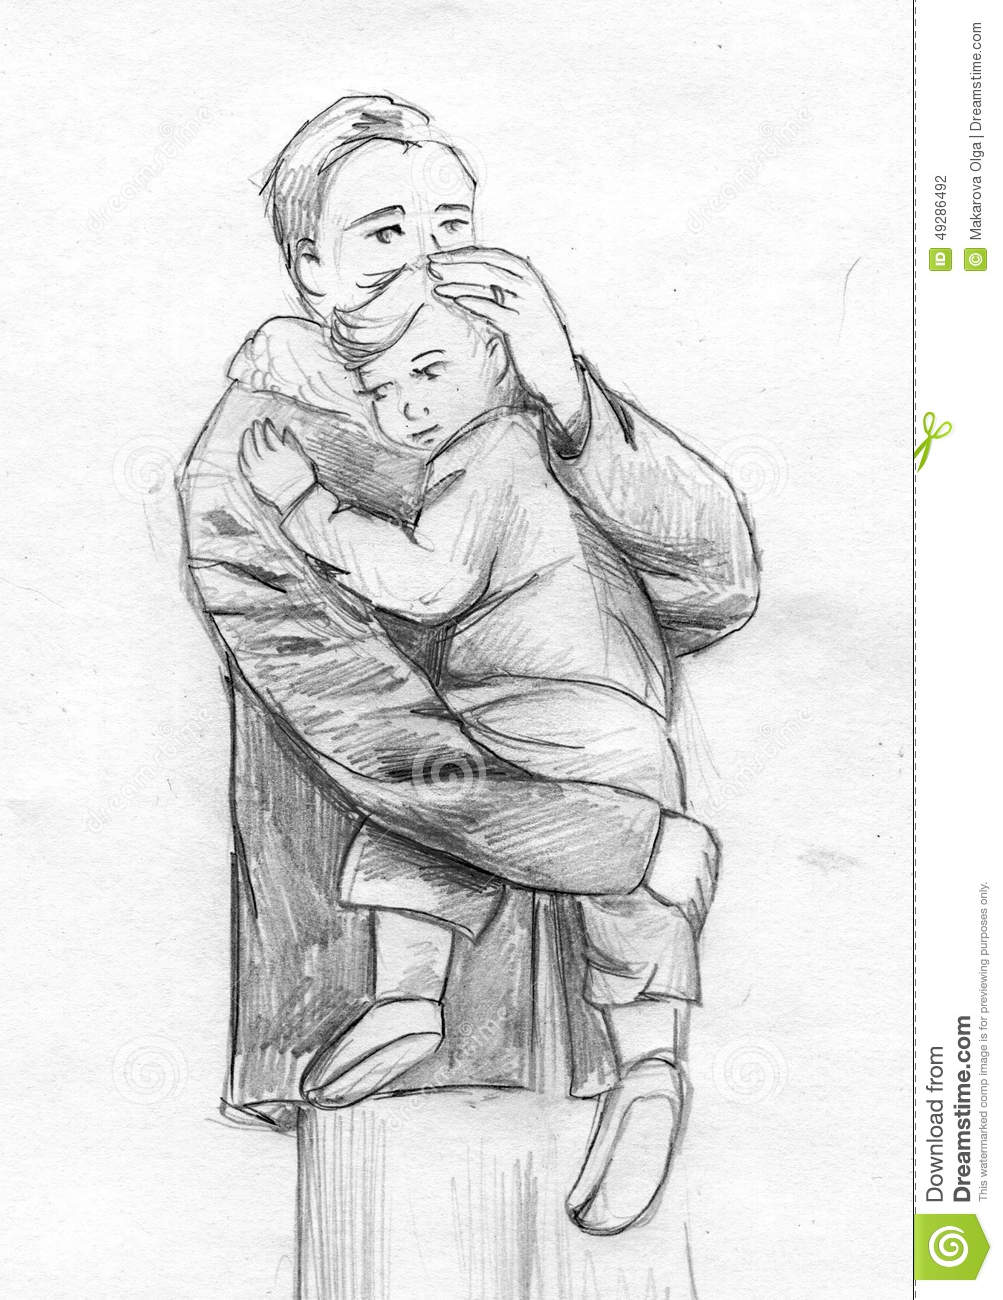 Hand drawn pencil sketch of a man gently holding a toddler